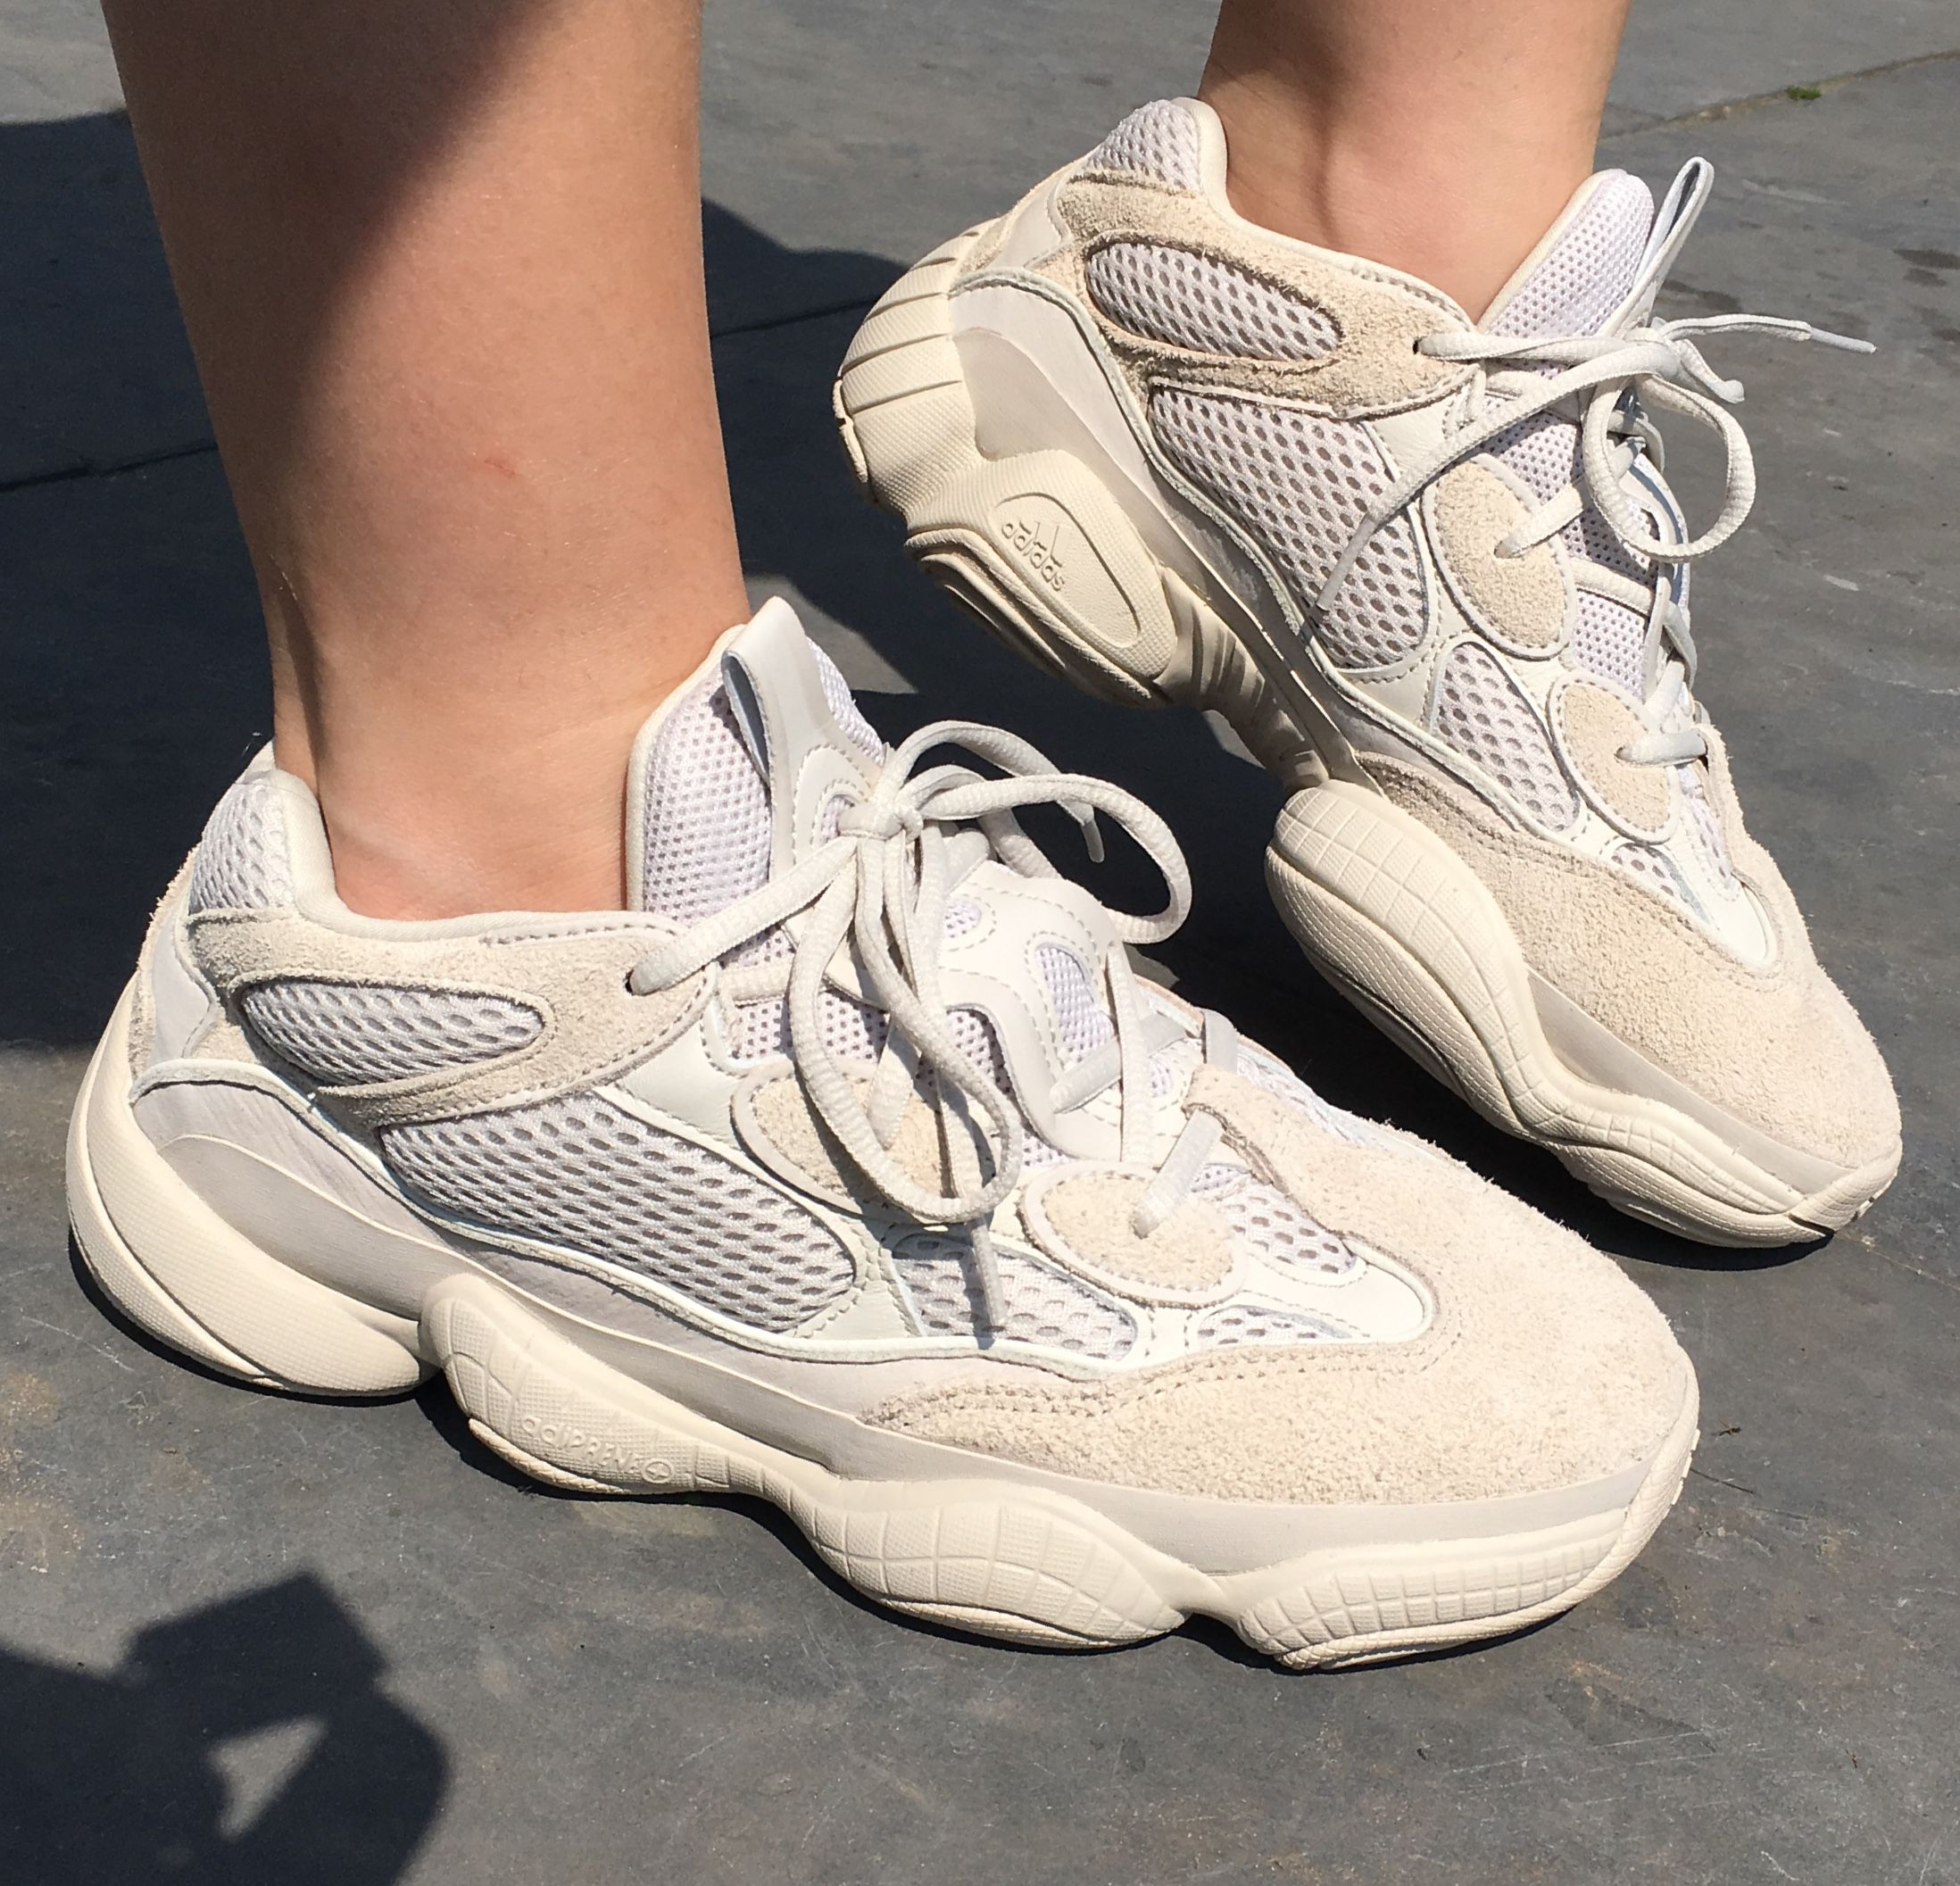 e2f4b19a4 Adidas yeezy 500 blush shoes XX streetwear Yeezy 500, Blush Shoes, Nike  Huarache,